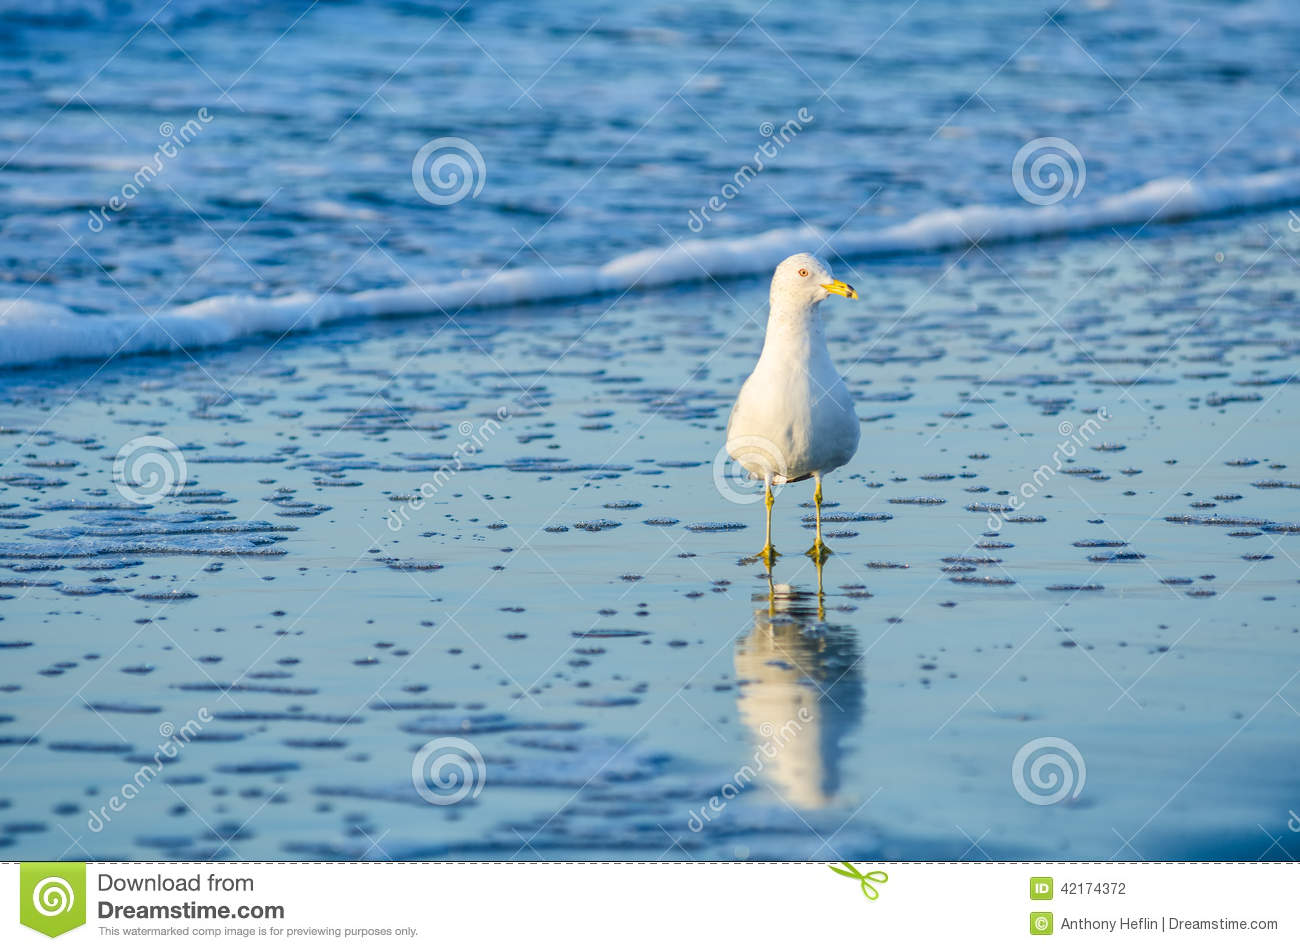 Seagull folly beach sc stock photo image 42174372 for 3d dreams fort mill sc